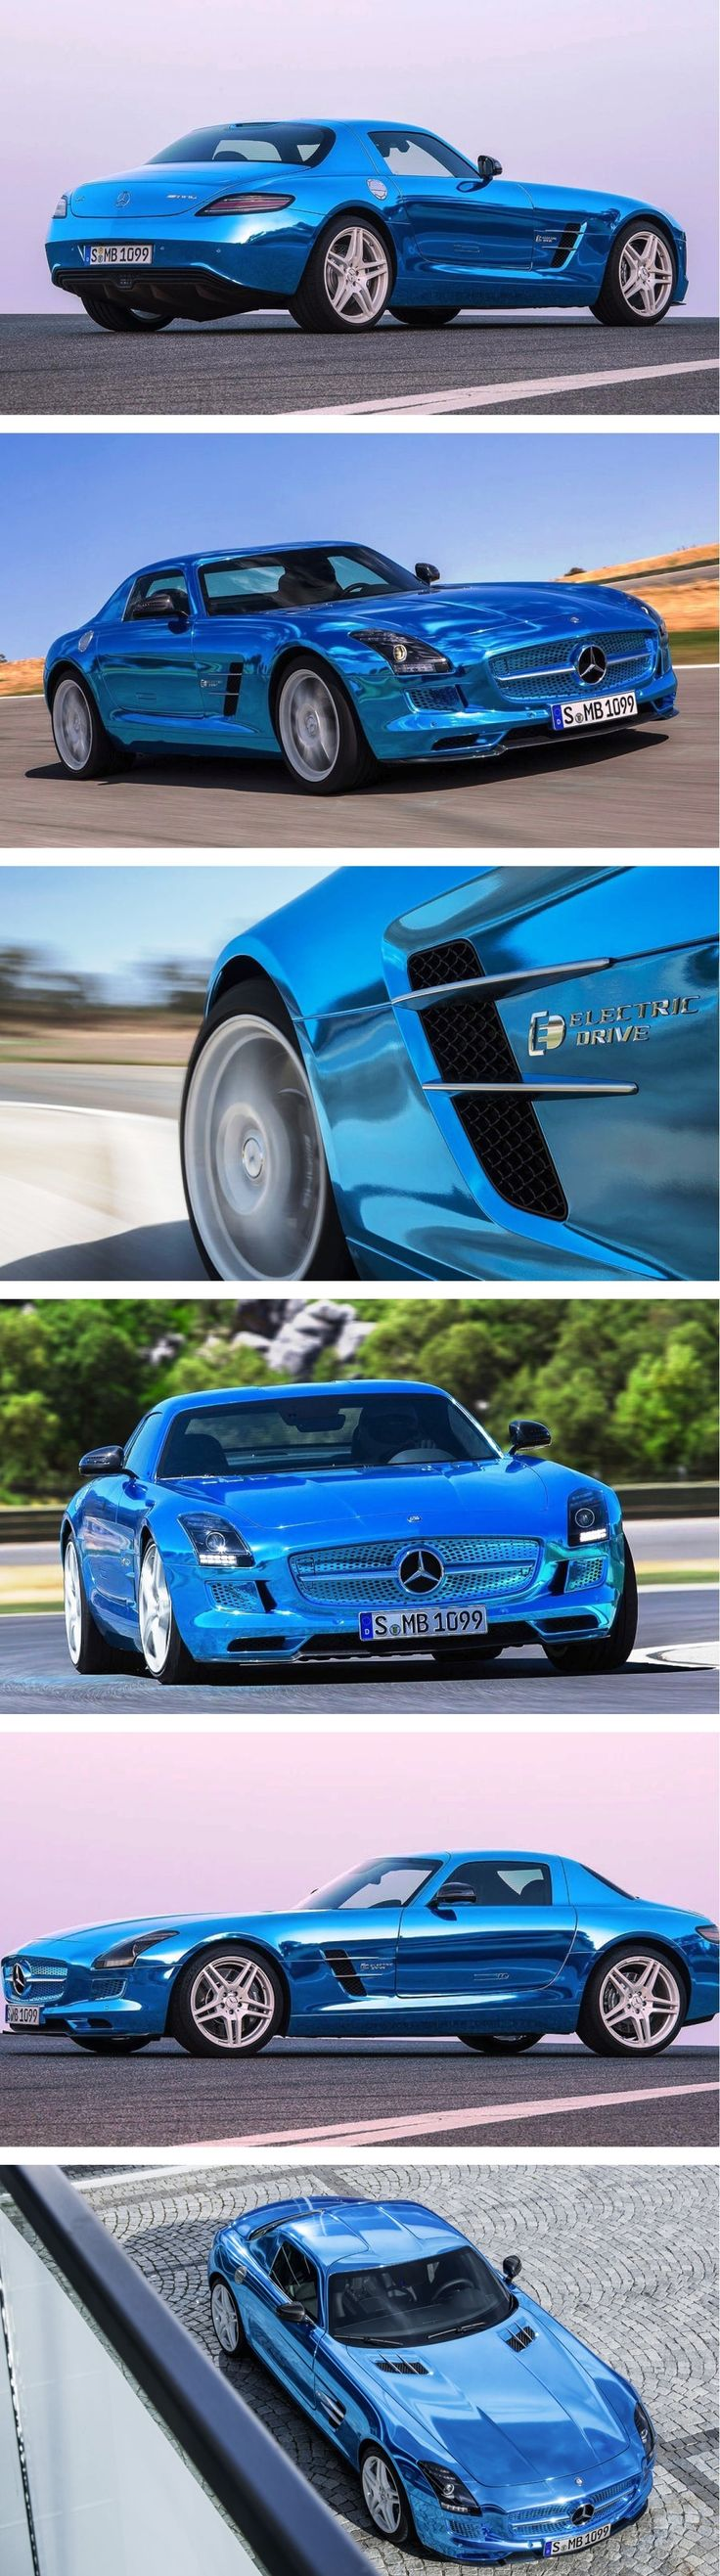 17 best ideas about mercedes benz sls on pinterest for Most expensive mercedes benz in the world